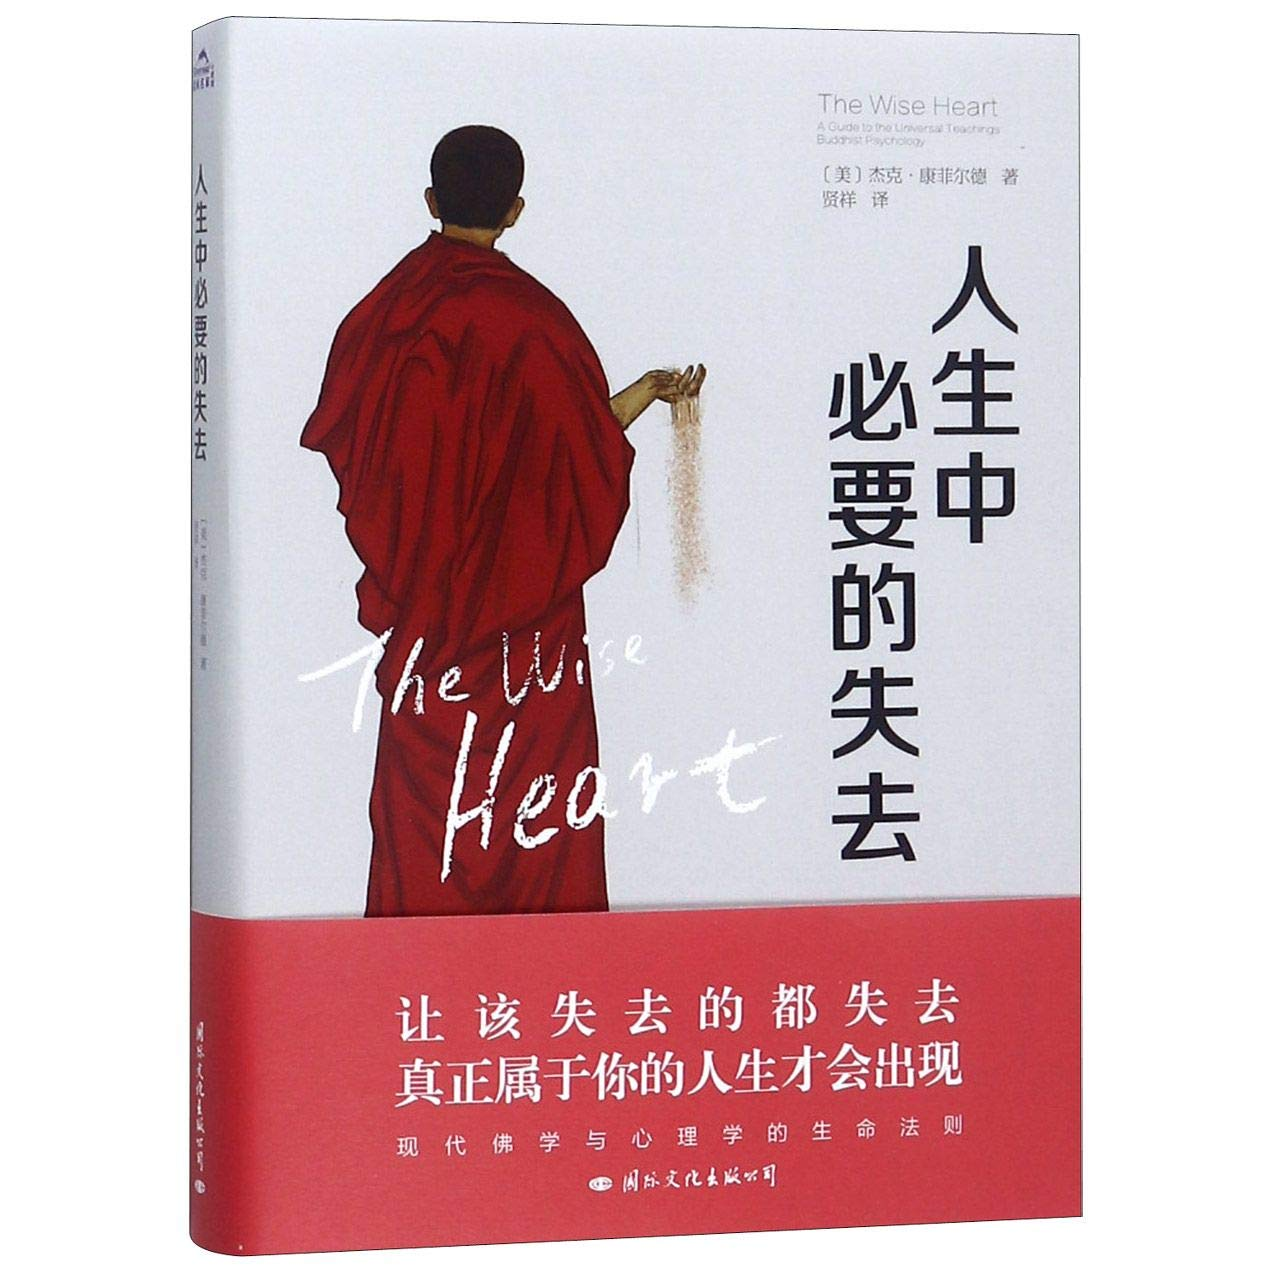 The Wise Heart:A Guide To The Universal Teachings Buddhist Psychology (Chinese Edition) By Jack Kornfield